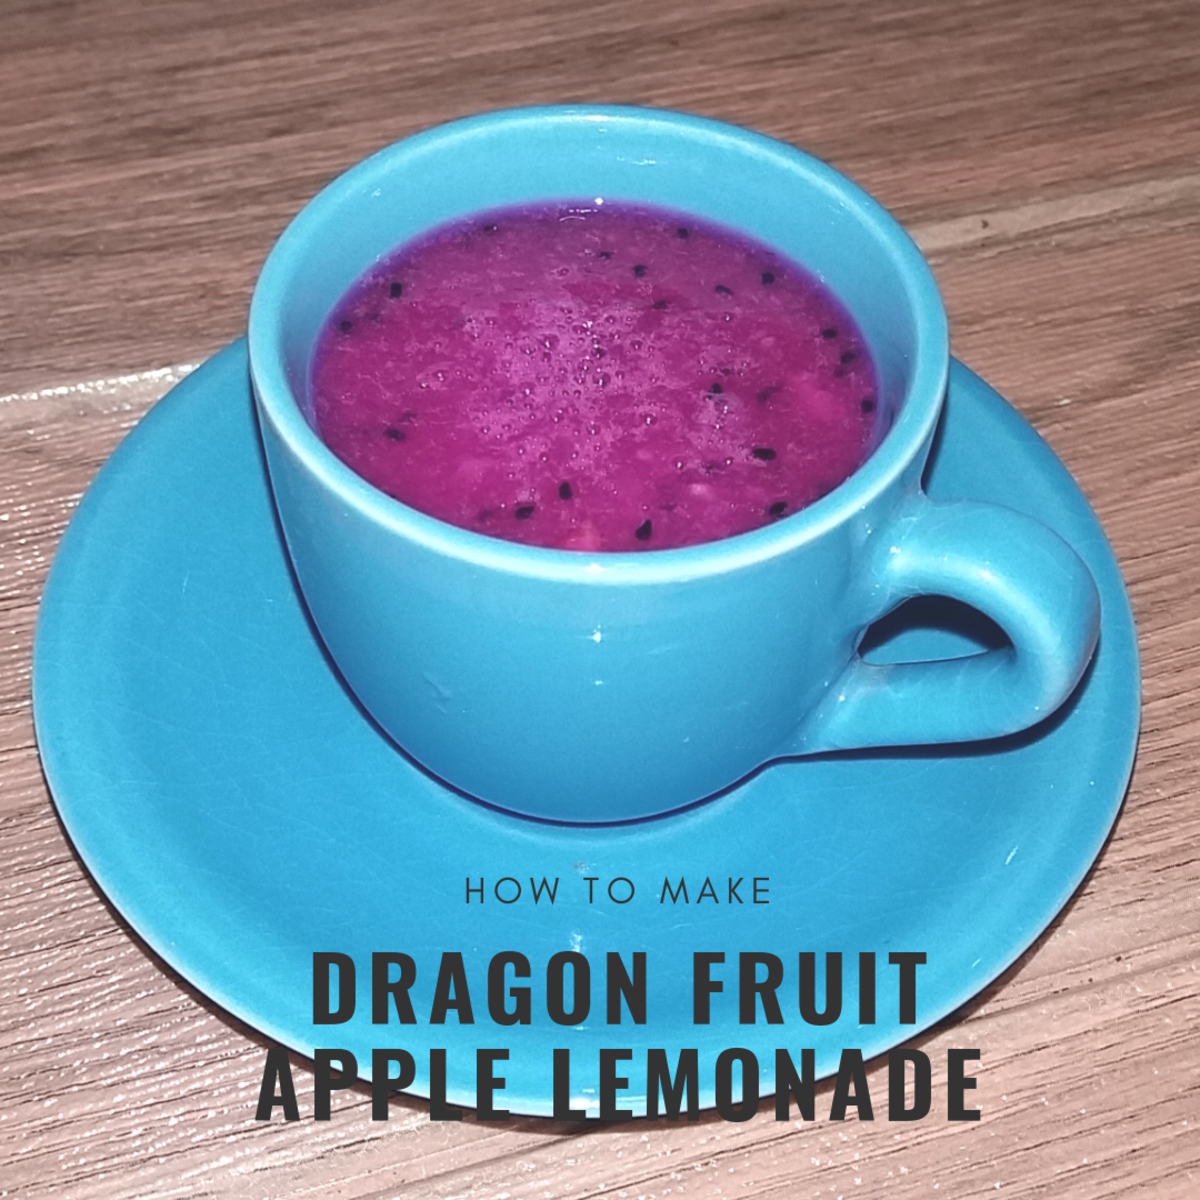 Learn how to make dragon fruit apple lemonade